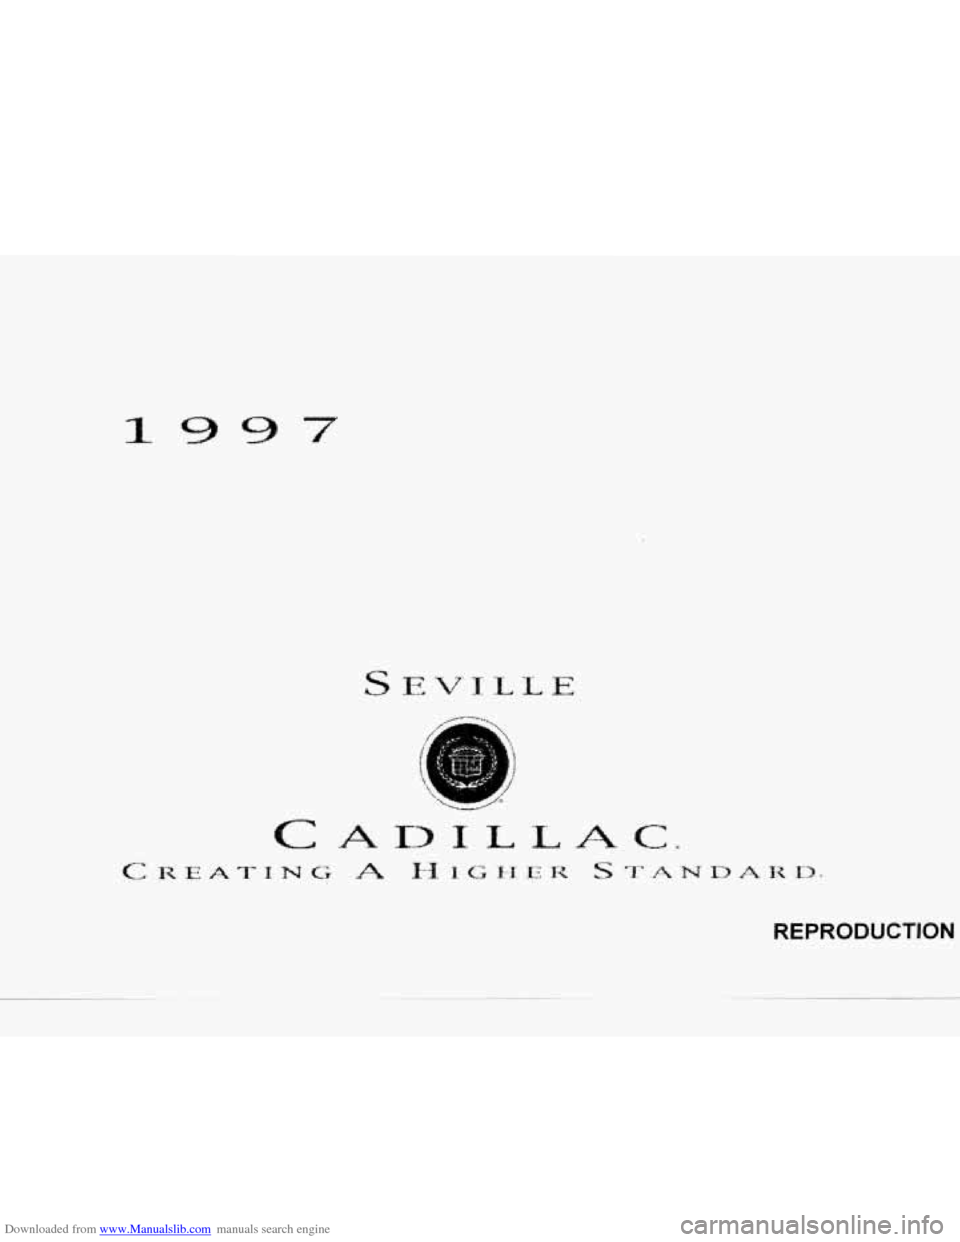 CADILLAC SEVILLE 1997 4.G Owners Manual, Page 1